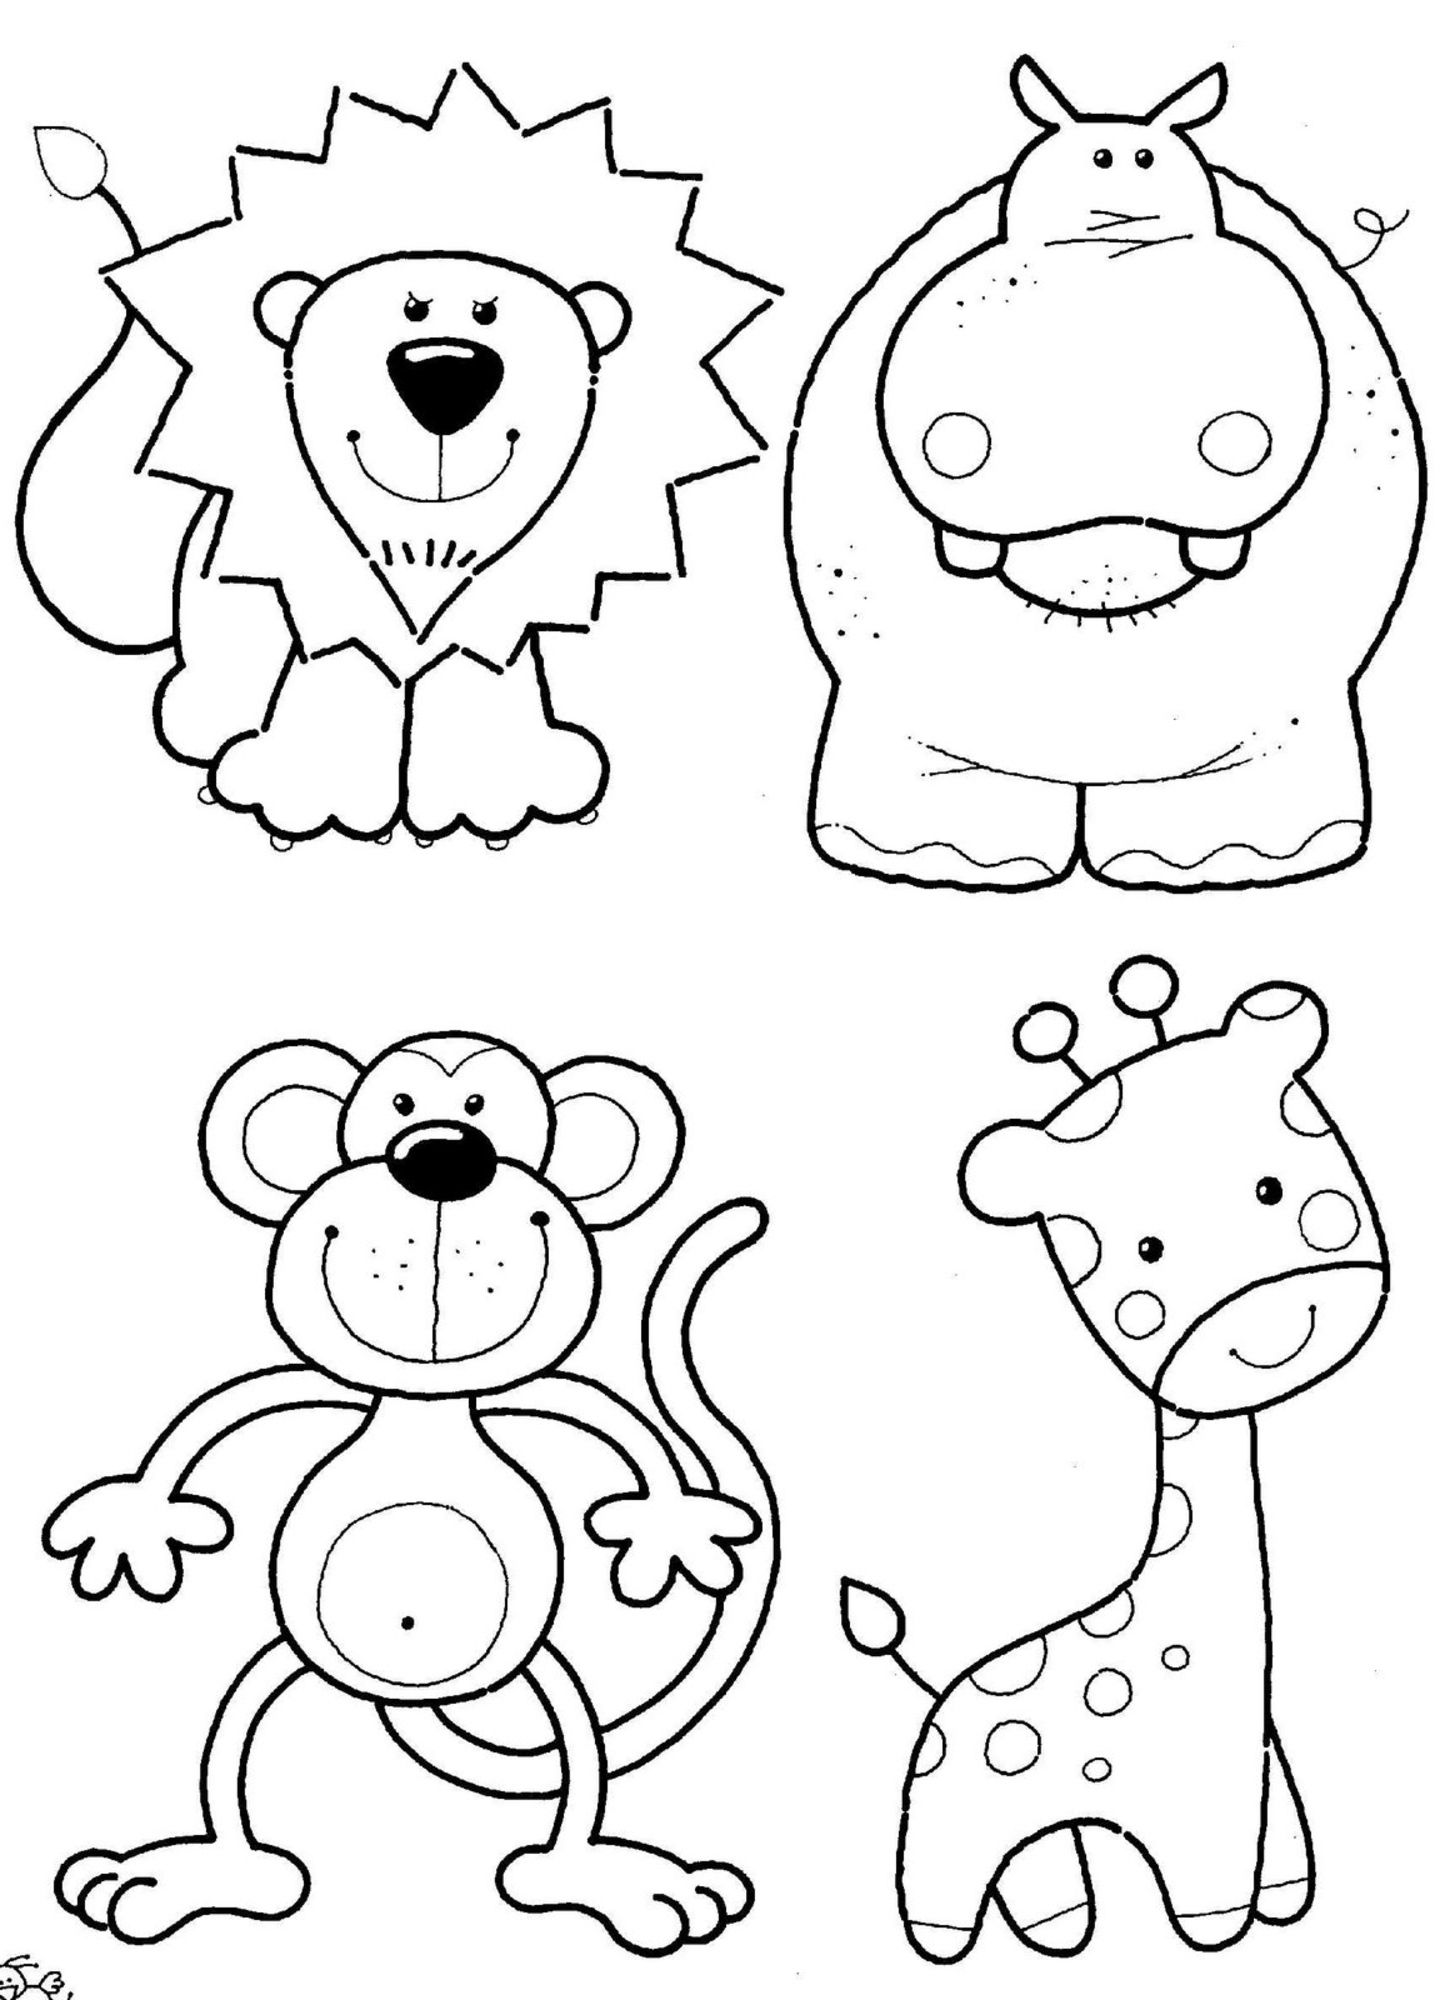 printable zoo animal coloring pages - photo#47